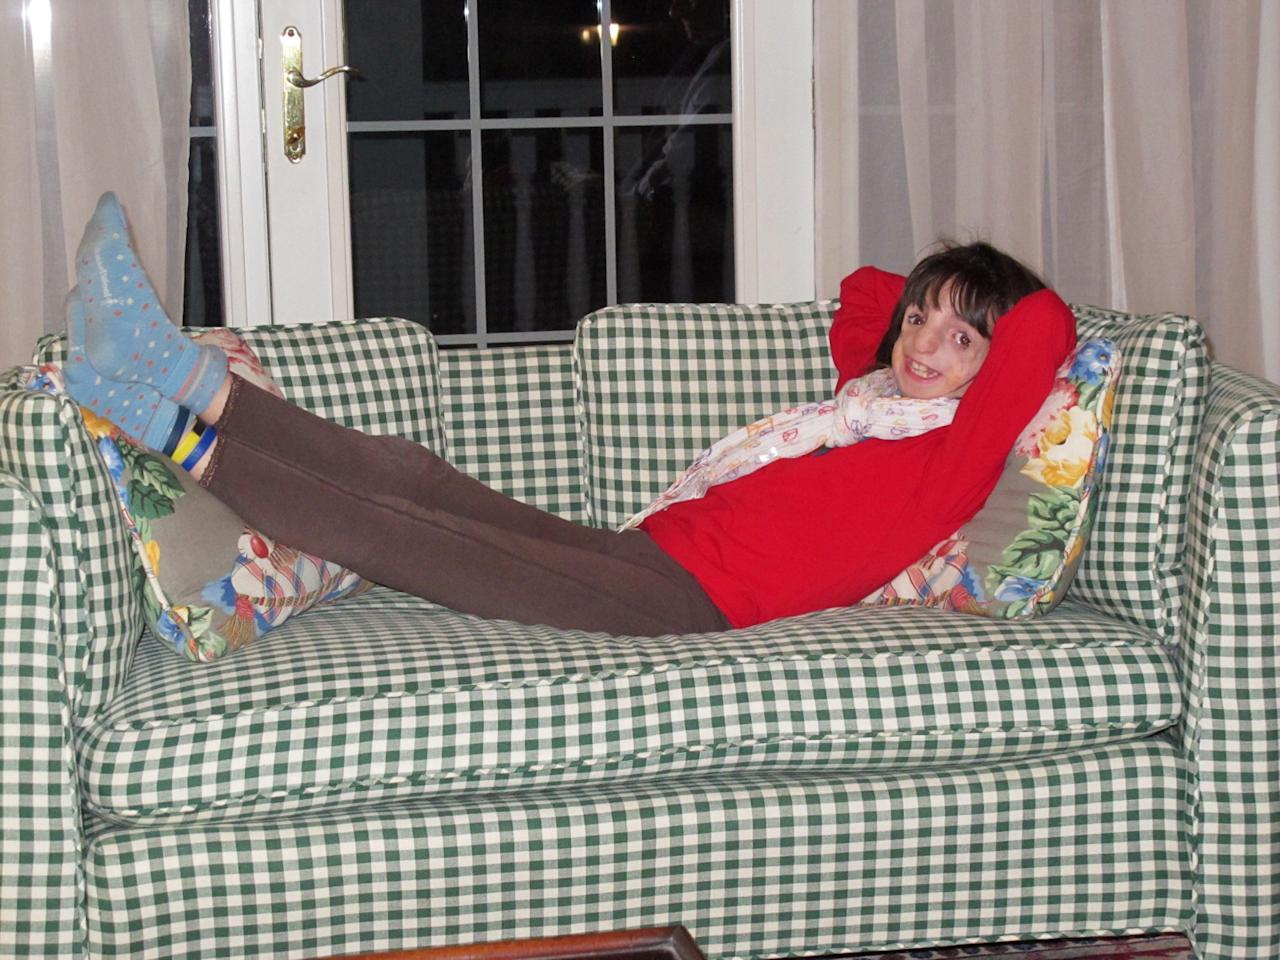 "In this Feb. 18, 2012 photo provided by the family, Clara Beatty, 9, smiles as she reclines on a couch at her home in Winnetka, Ill. Despite having Treacher Collins syndrome which deformed her face, her parents say Clara is a strong little girl who generally navigates the world with ease. Clara does say that people's stares and comments annoy her sometimes, but generally, she has learned to ignore them - or ""smiles and says hi"" as her parents have instructed her to do. (AP Photo)"